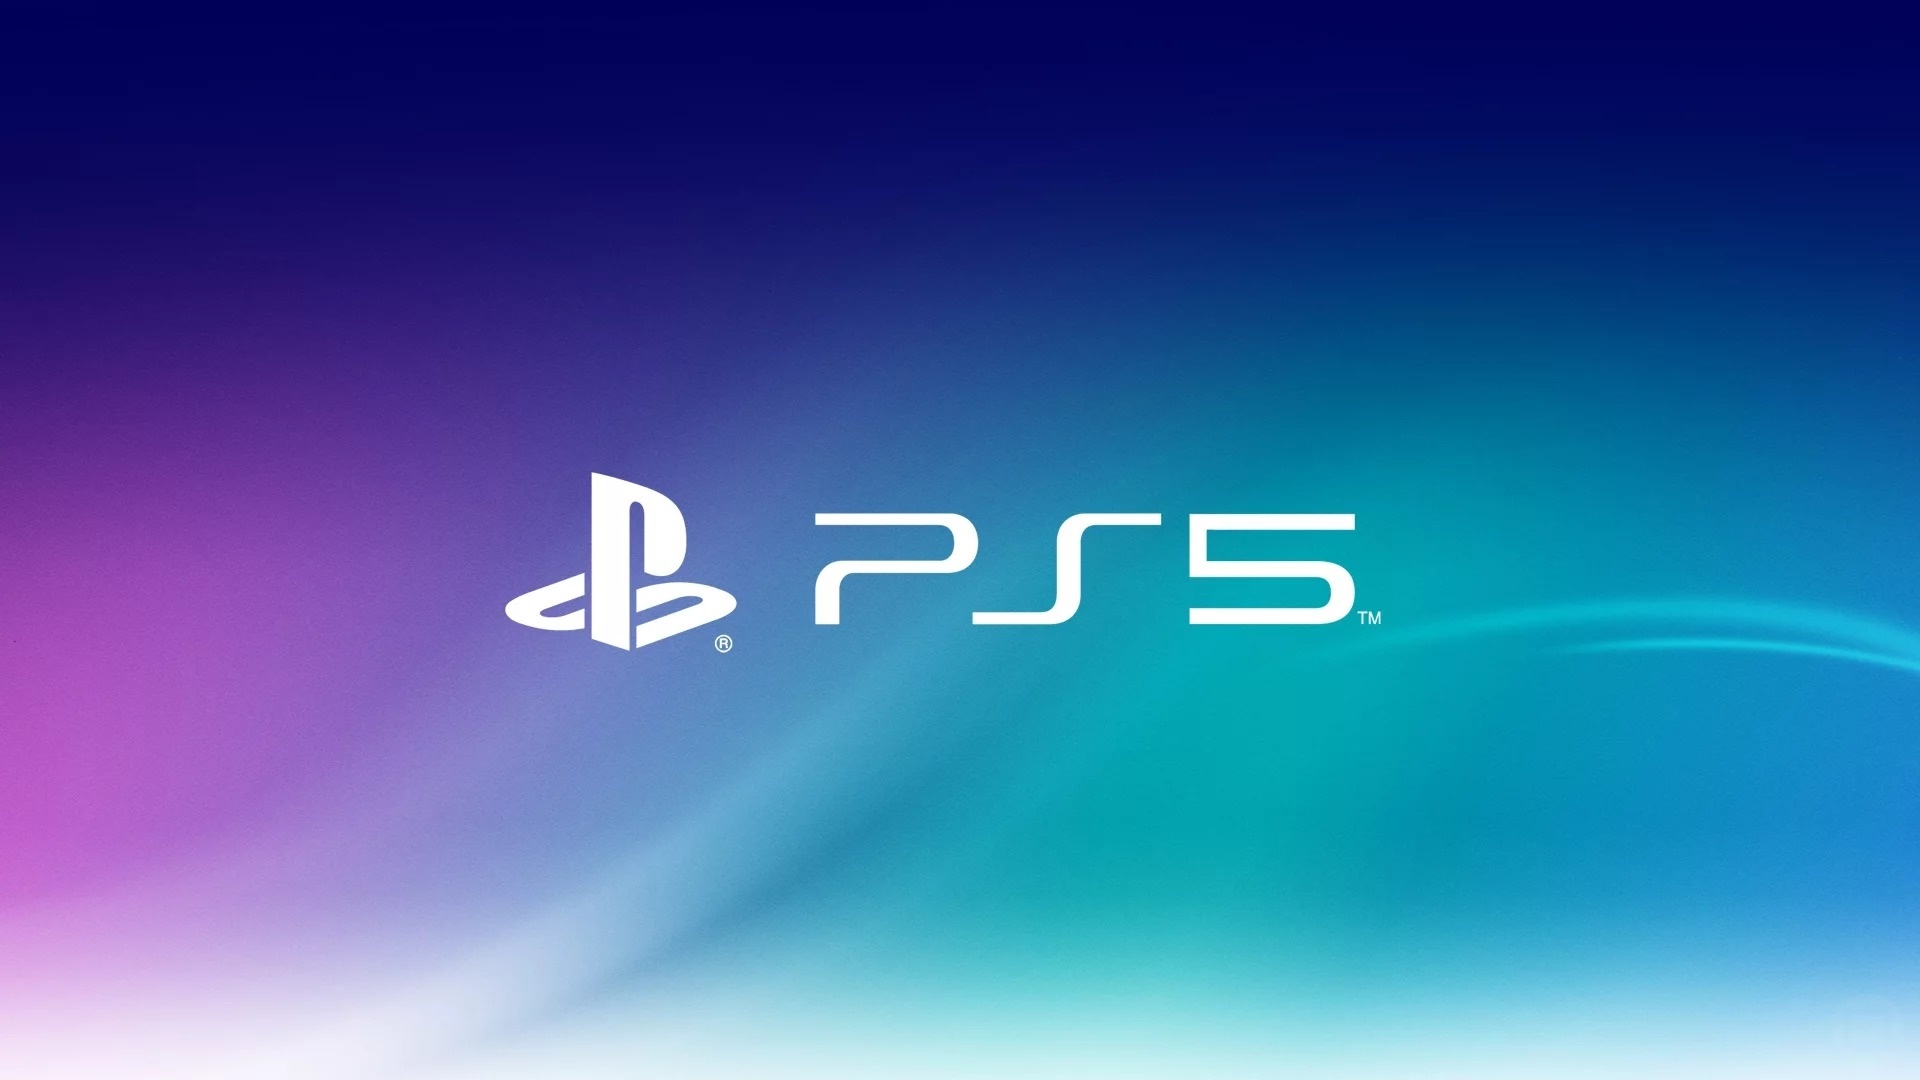 Playstation 5 Free Wallpaper and Background